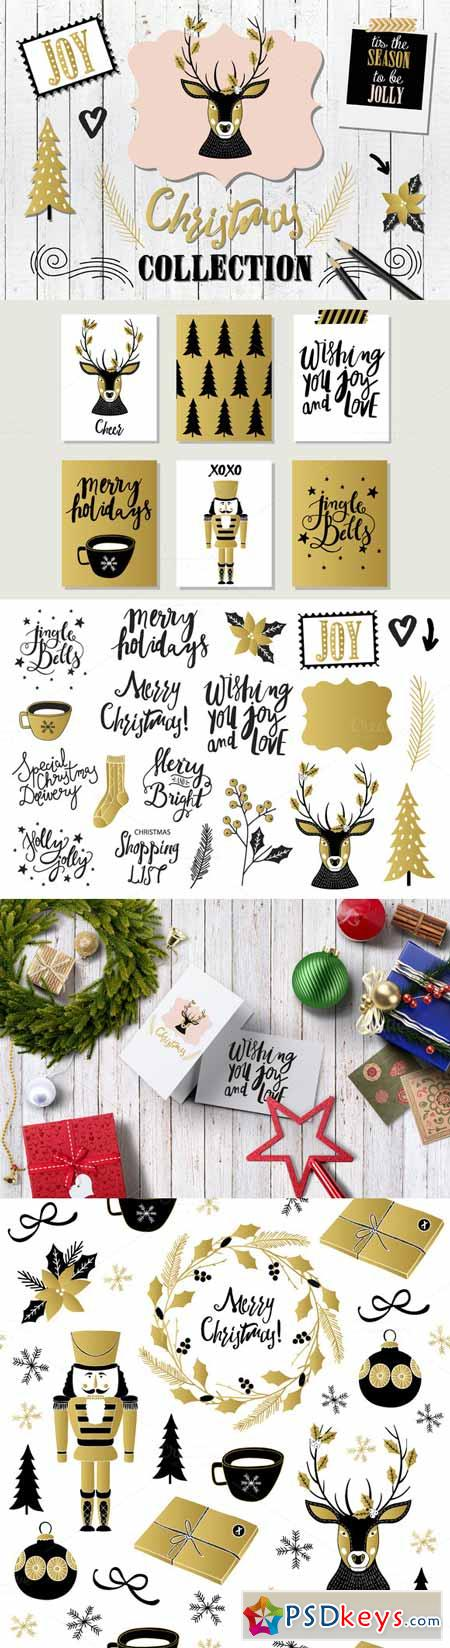 Gold Christmas Collection 404416